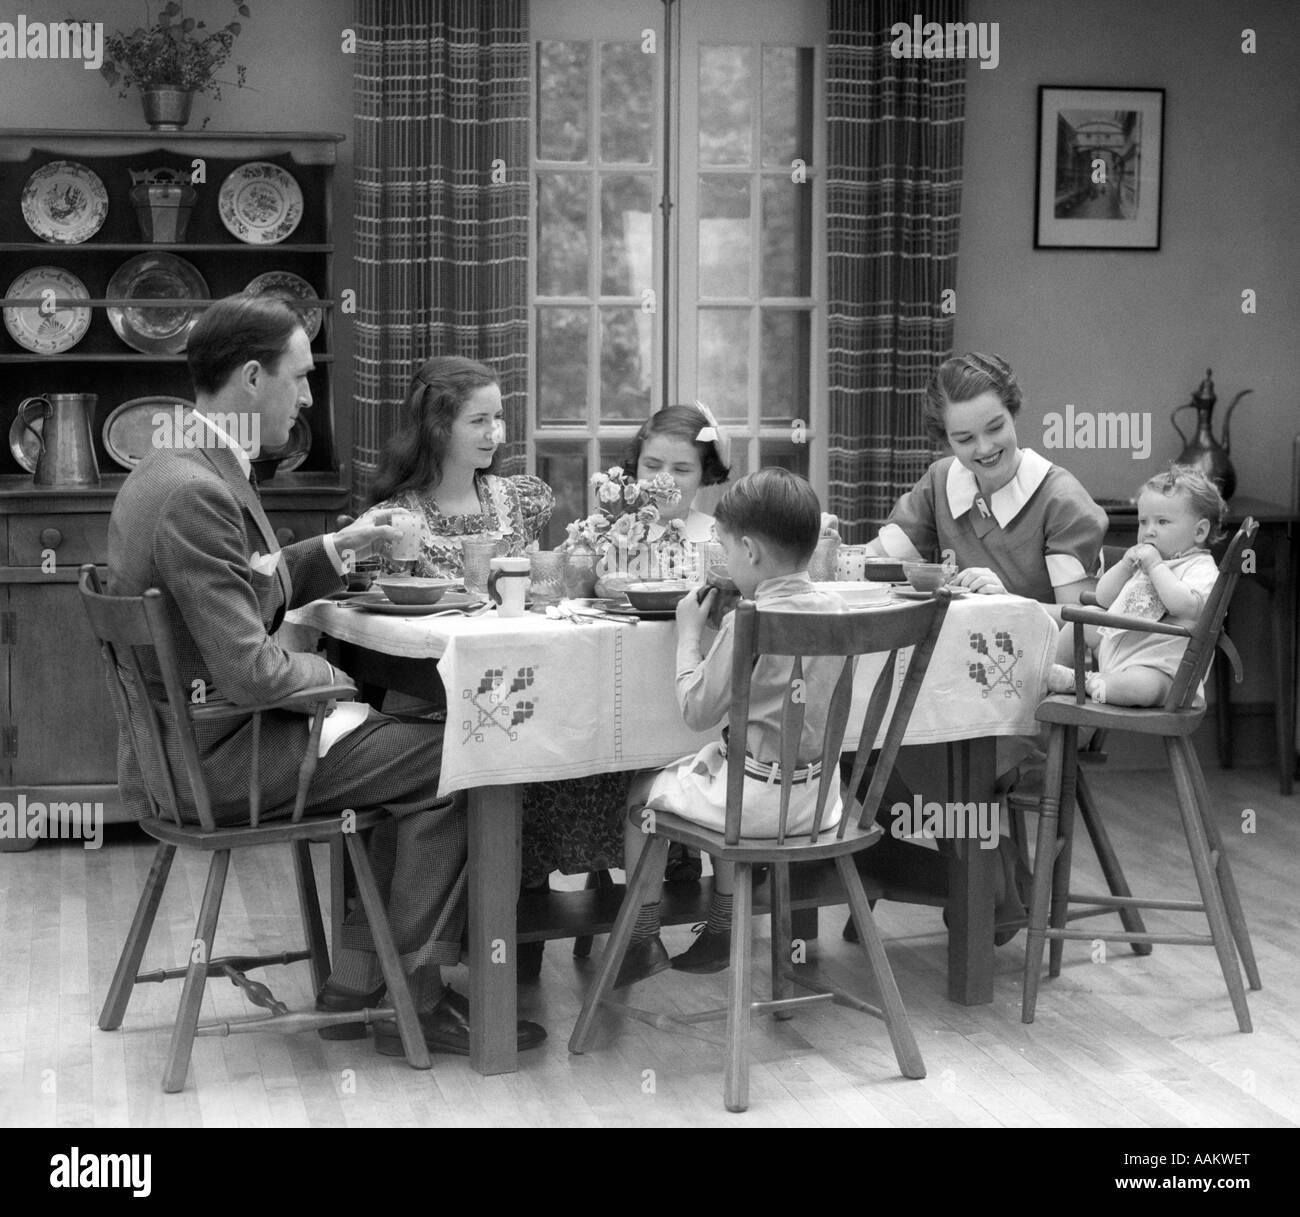 1930s FAMILY OF 6 SITTING AT THE TABLE IN A DINING ROOM EATING BREAKFAST THE BABY IS SITTING IN A HIGH CHAIR - Stock Image